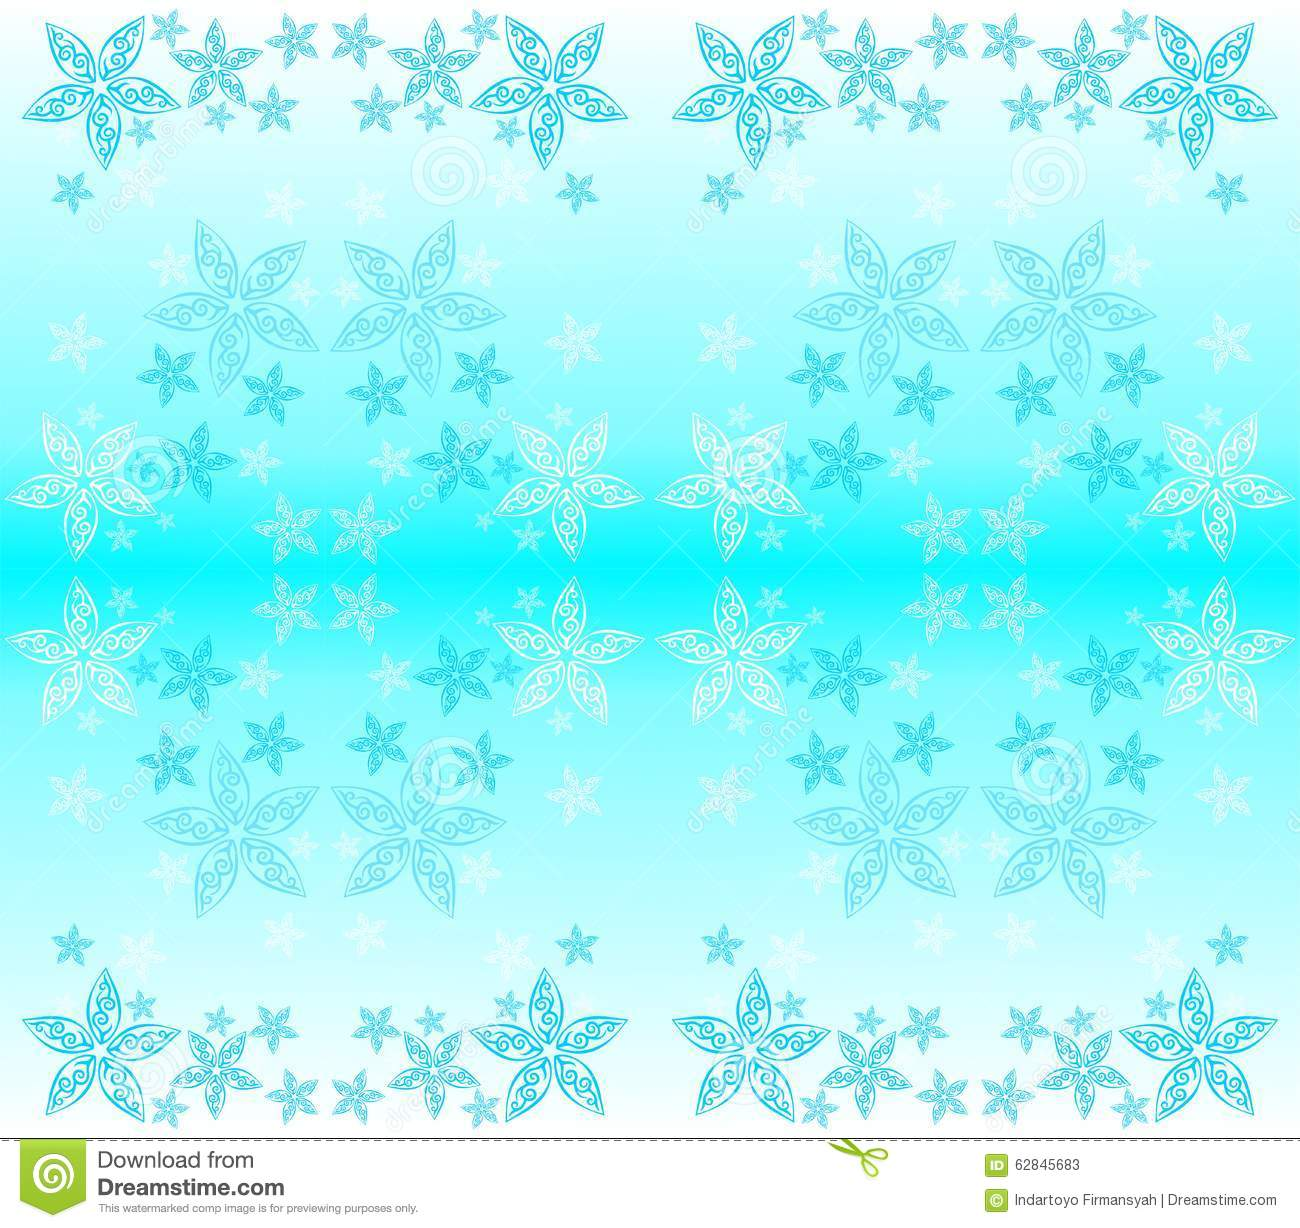 Wallpaper Blue Tosca Star Ornament